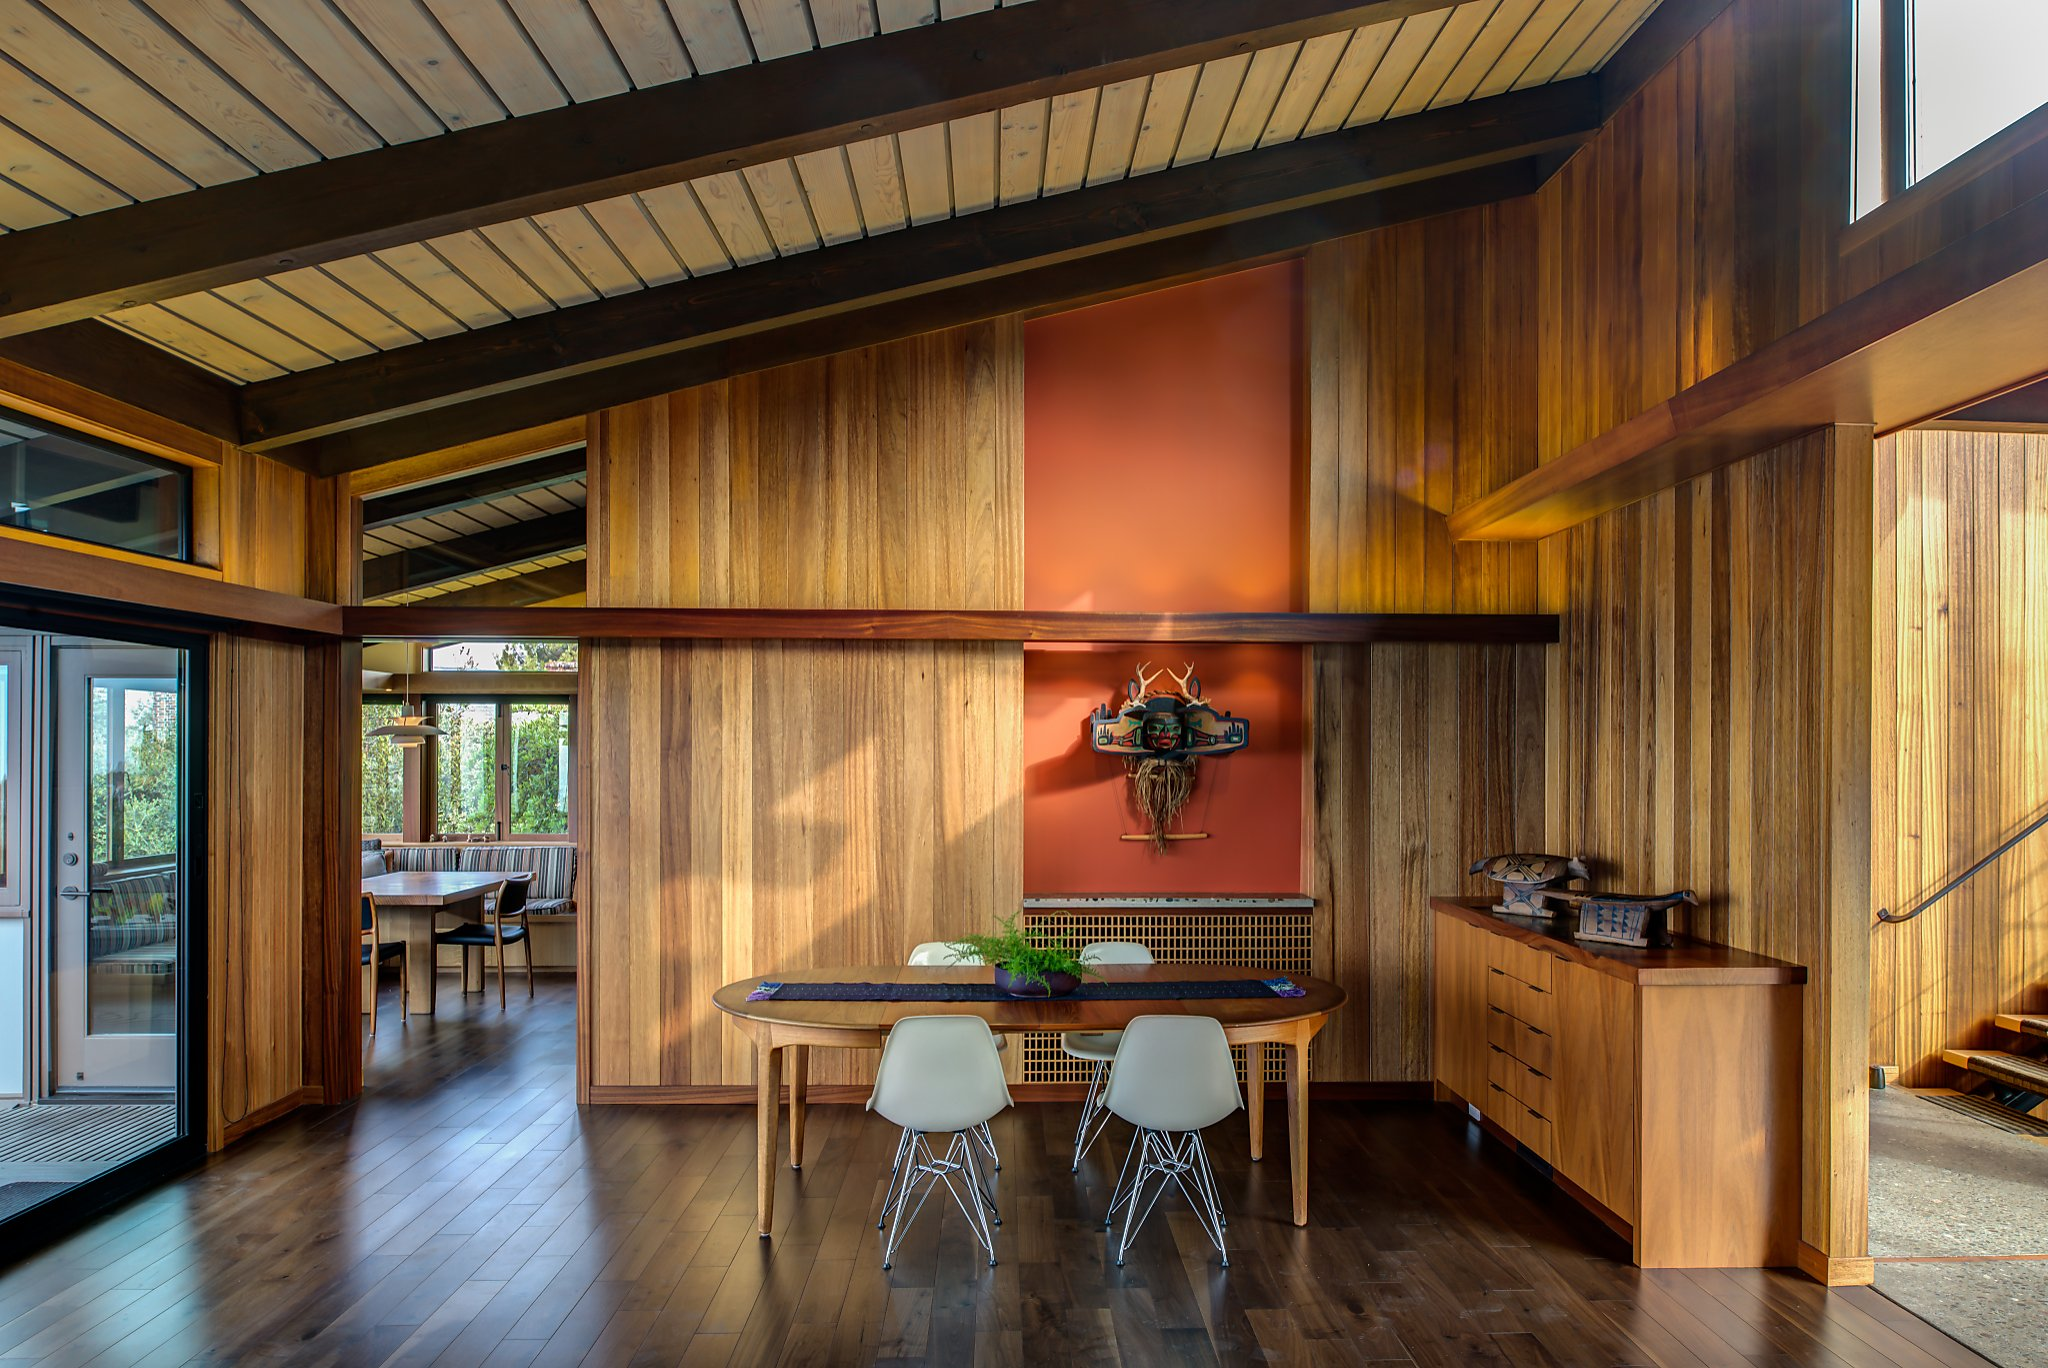 1975 home interior design forum house of samples home interior design forum singapore home design and style